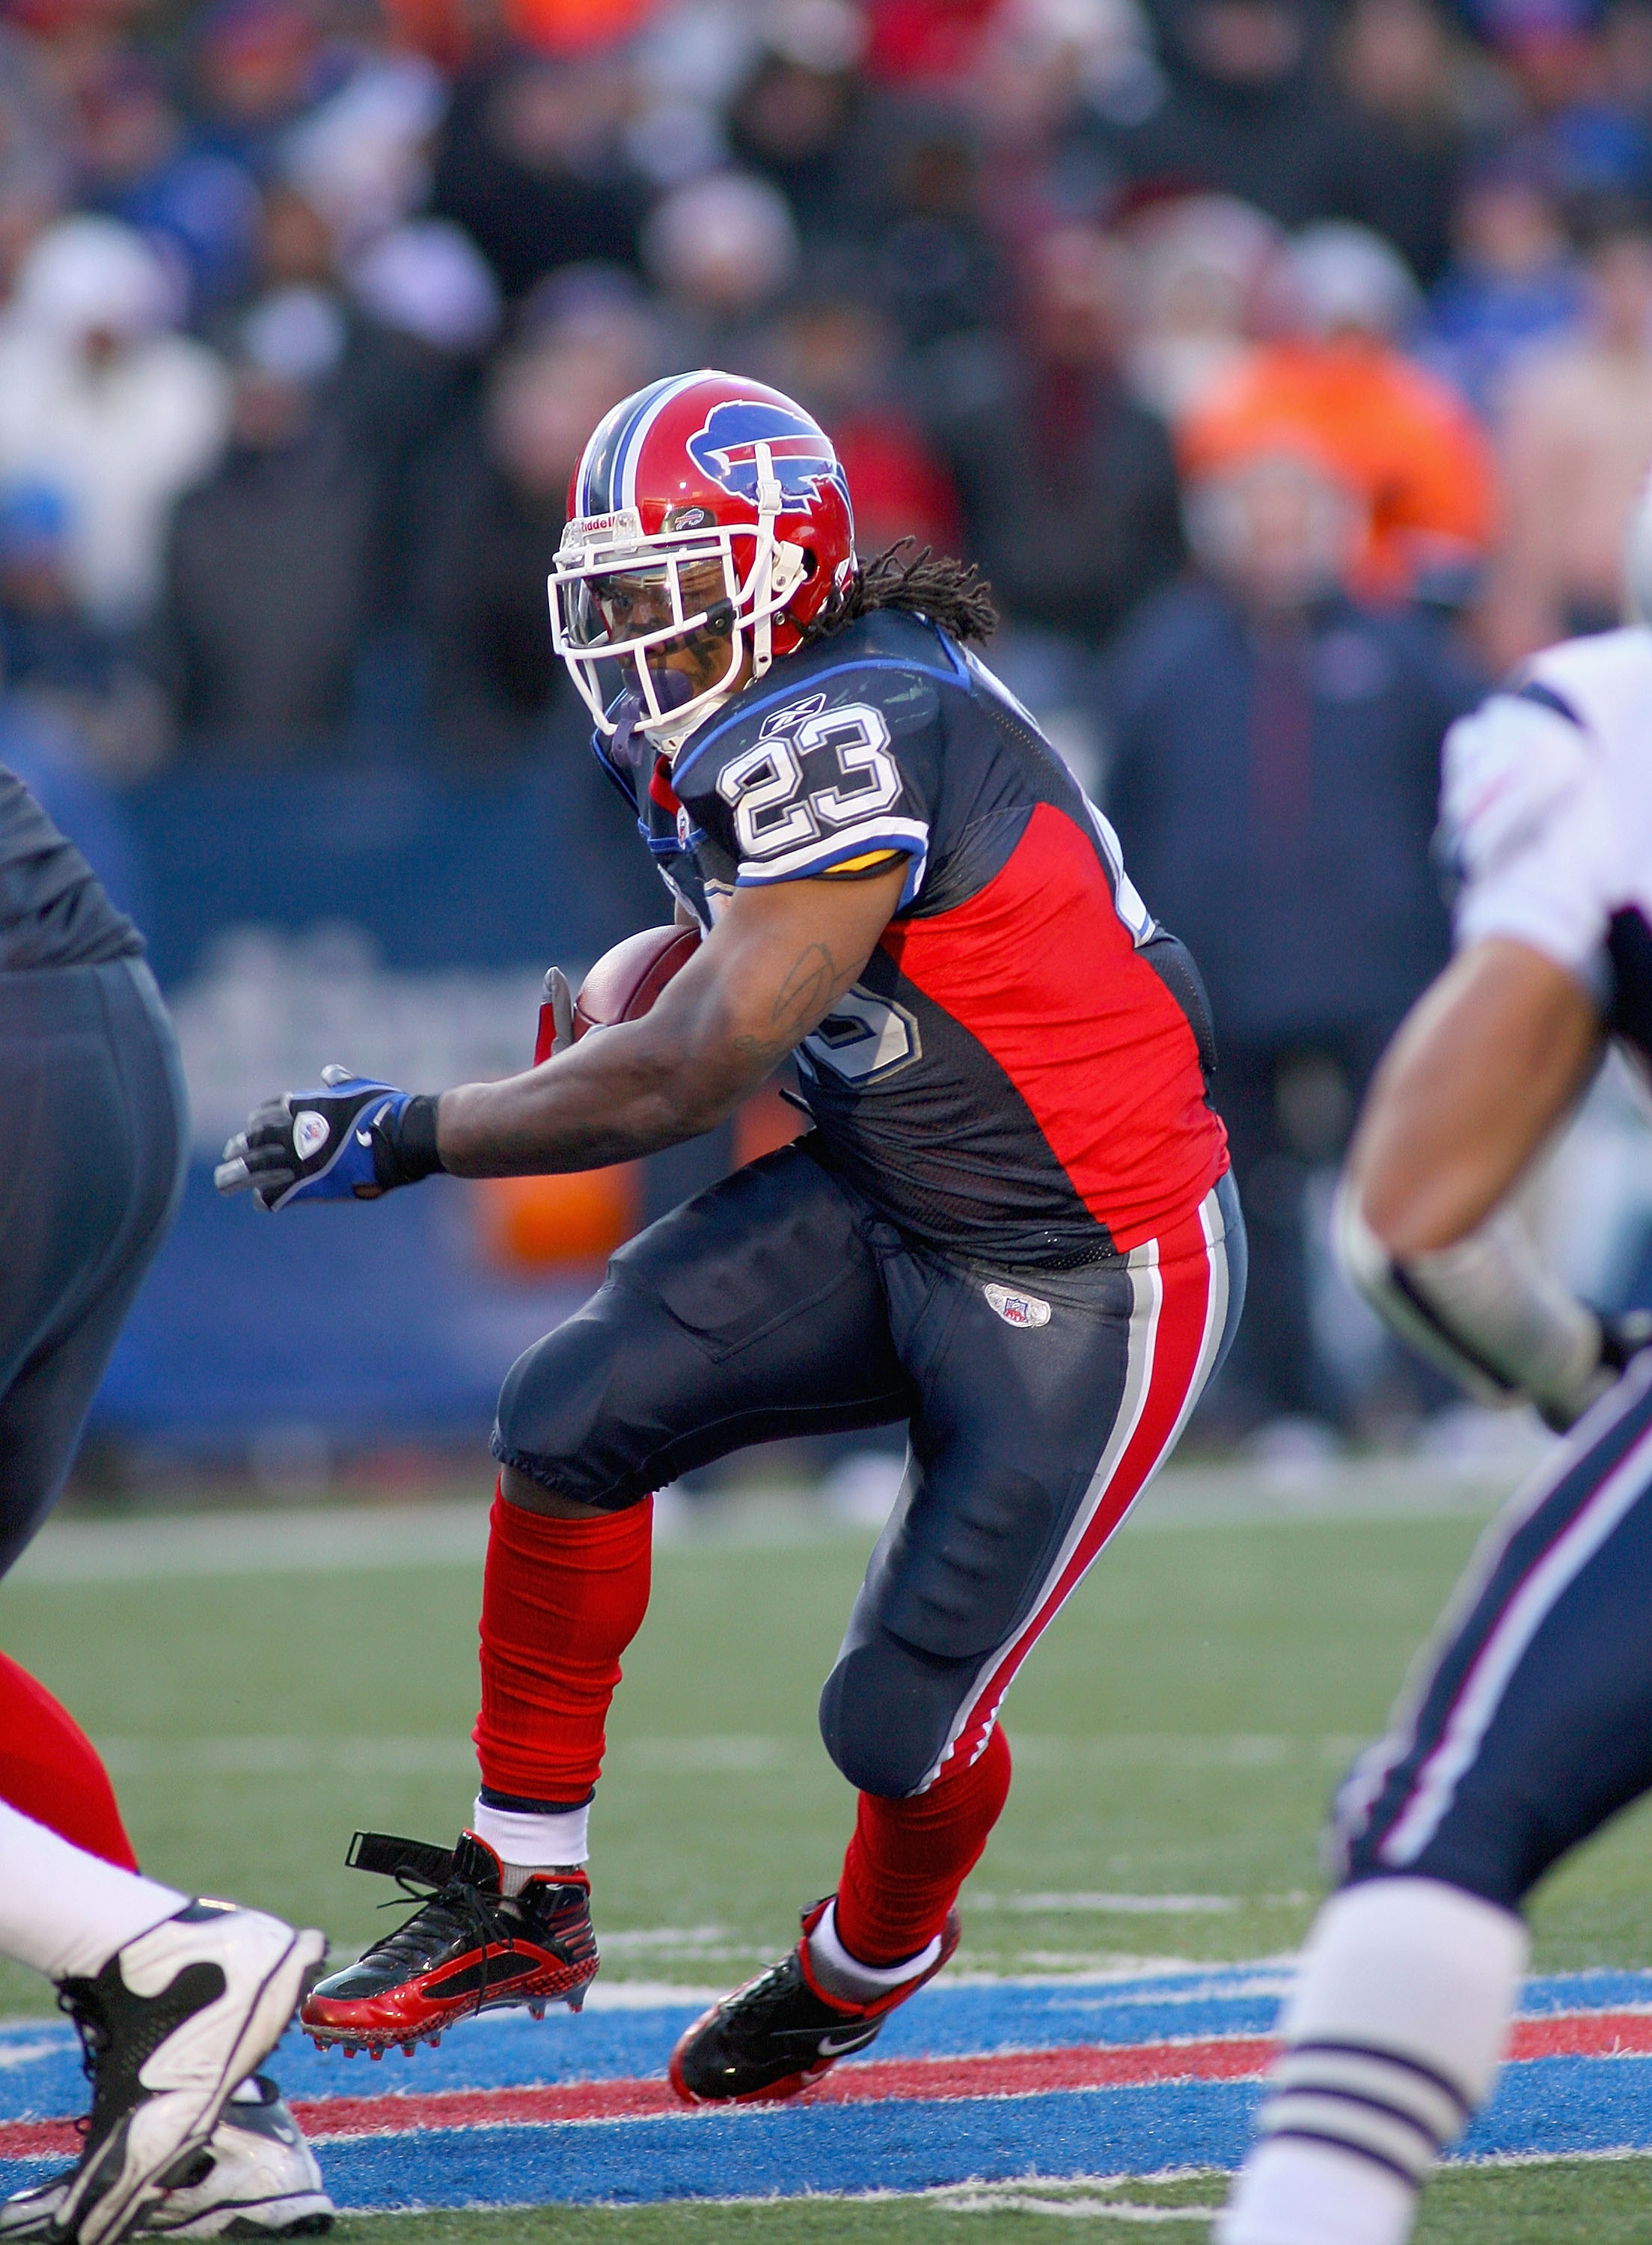 ORCHARD PARK, NY - DECEMBER 20: Marshawn Lynch #23  of the Buffalo Bills runs against the New England Patriots at Ralph Wilson Stadium on December 20, 2009 in Orchard Park, New York. The Patriots won 17-10. (Photo by Rick Stewart/Getty Images)